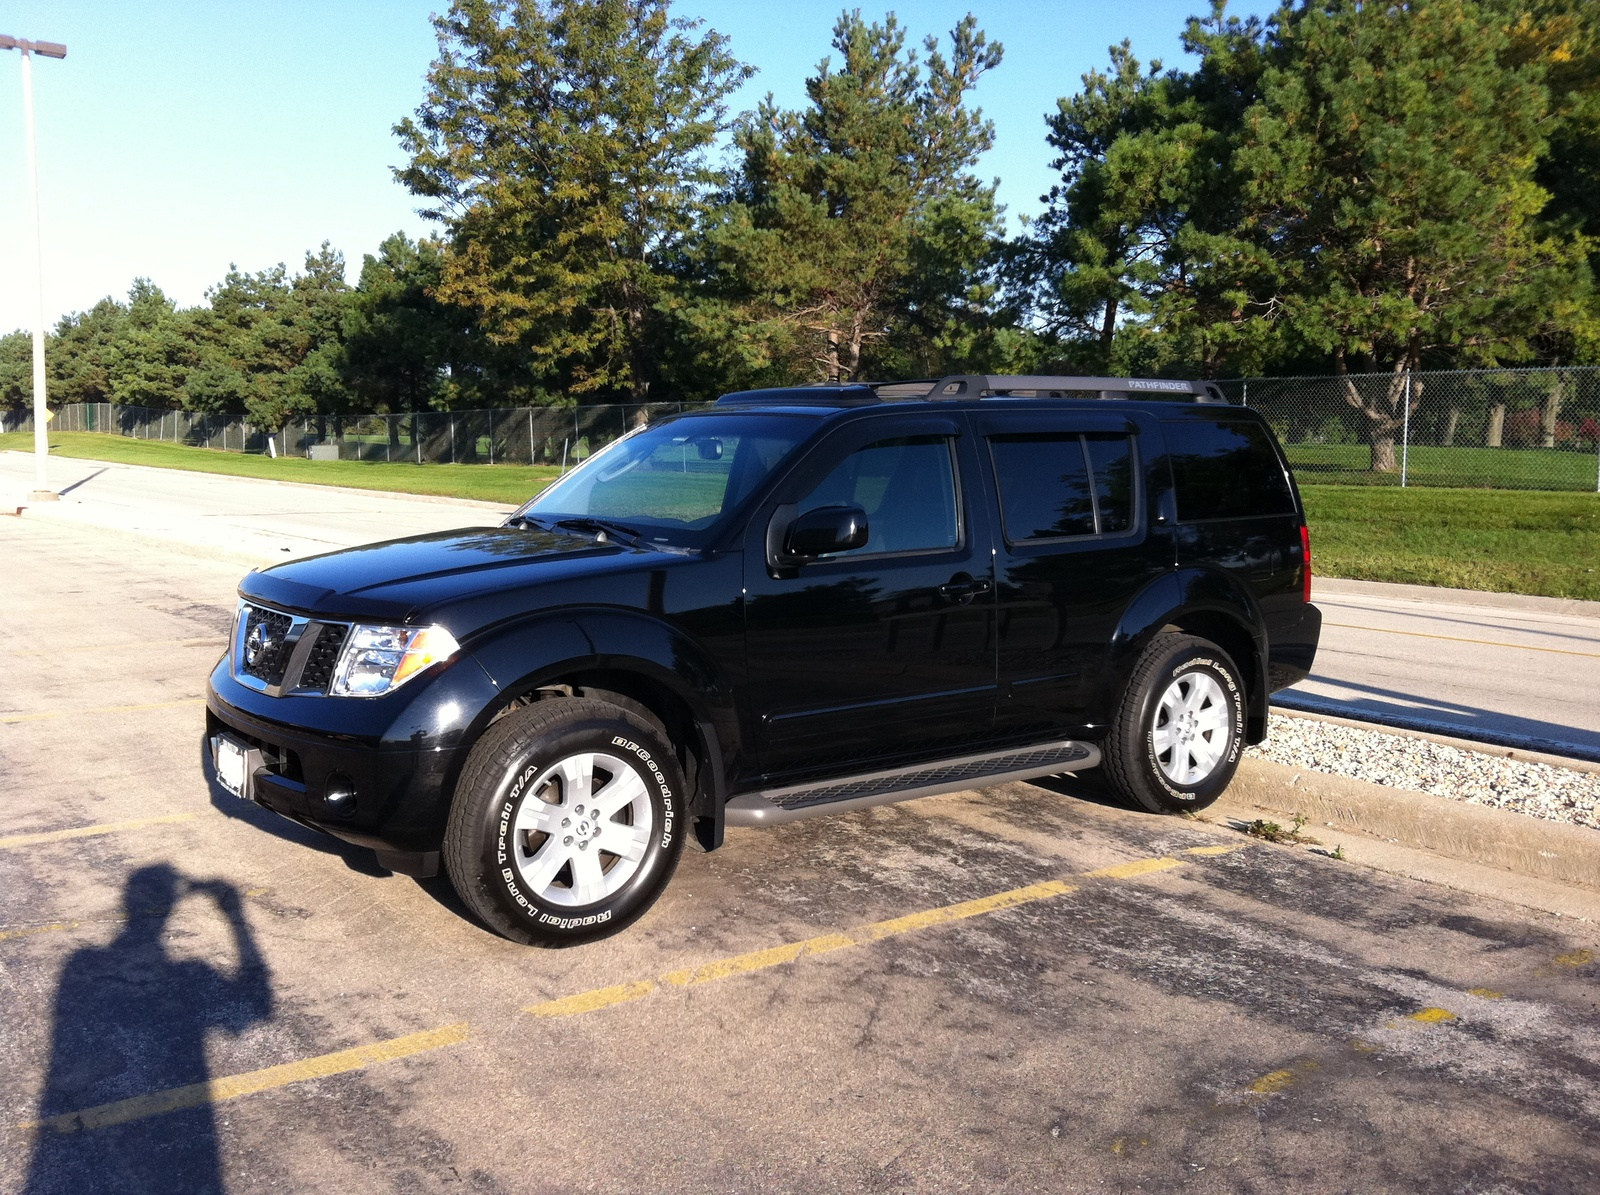 2007 Nissan Pathfinder LE - Picture of 2007 Nissan Pathfin ...